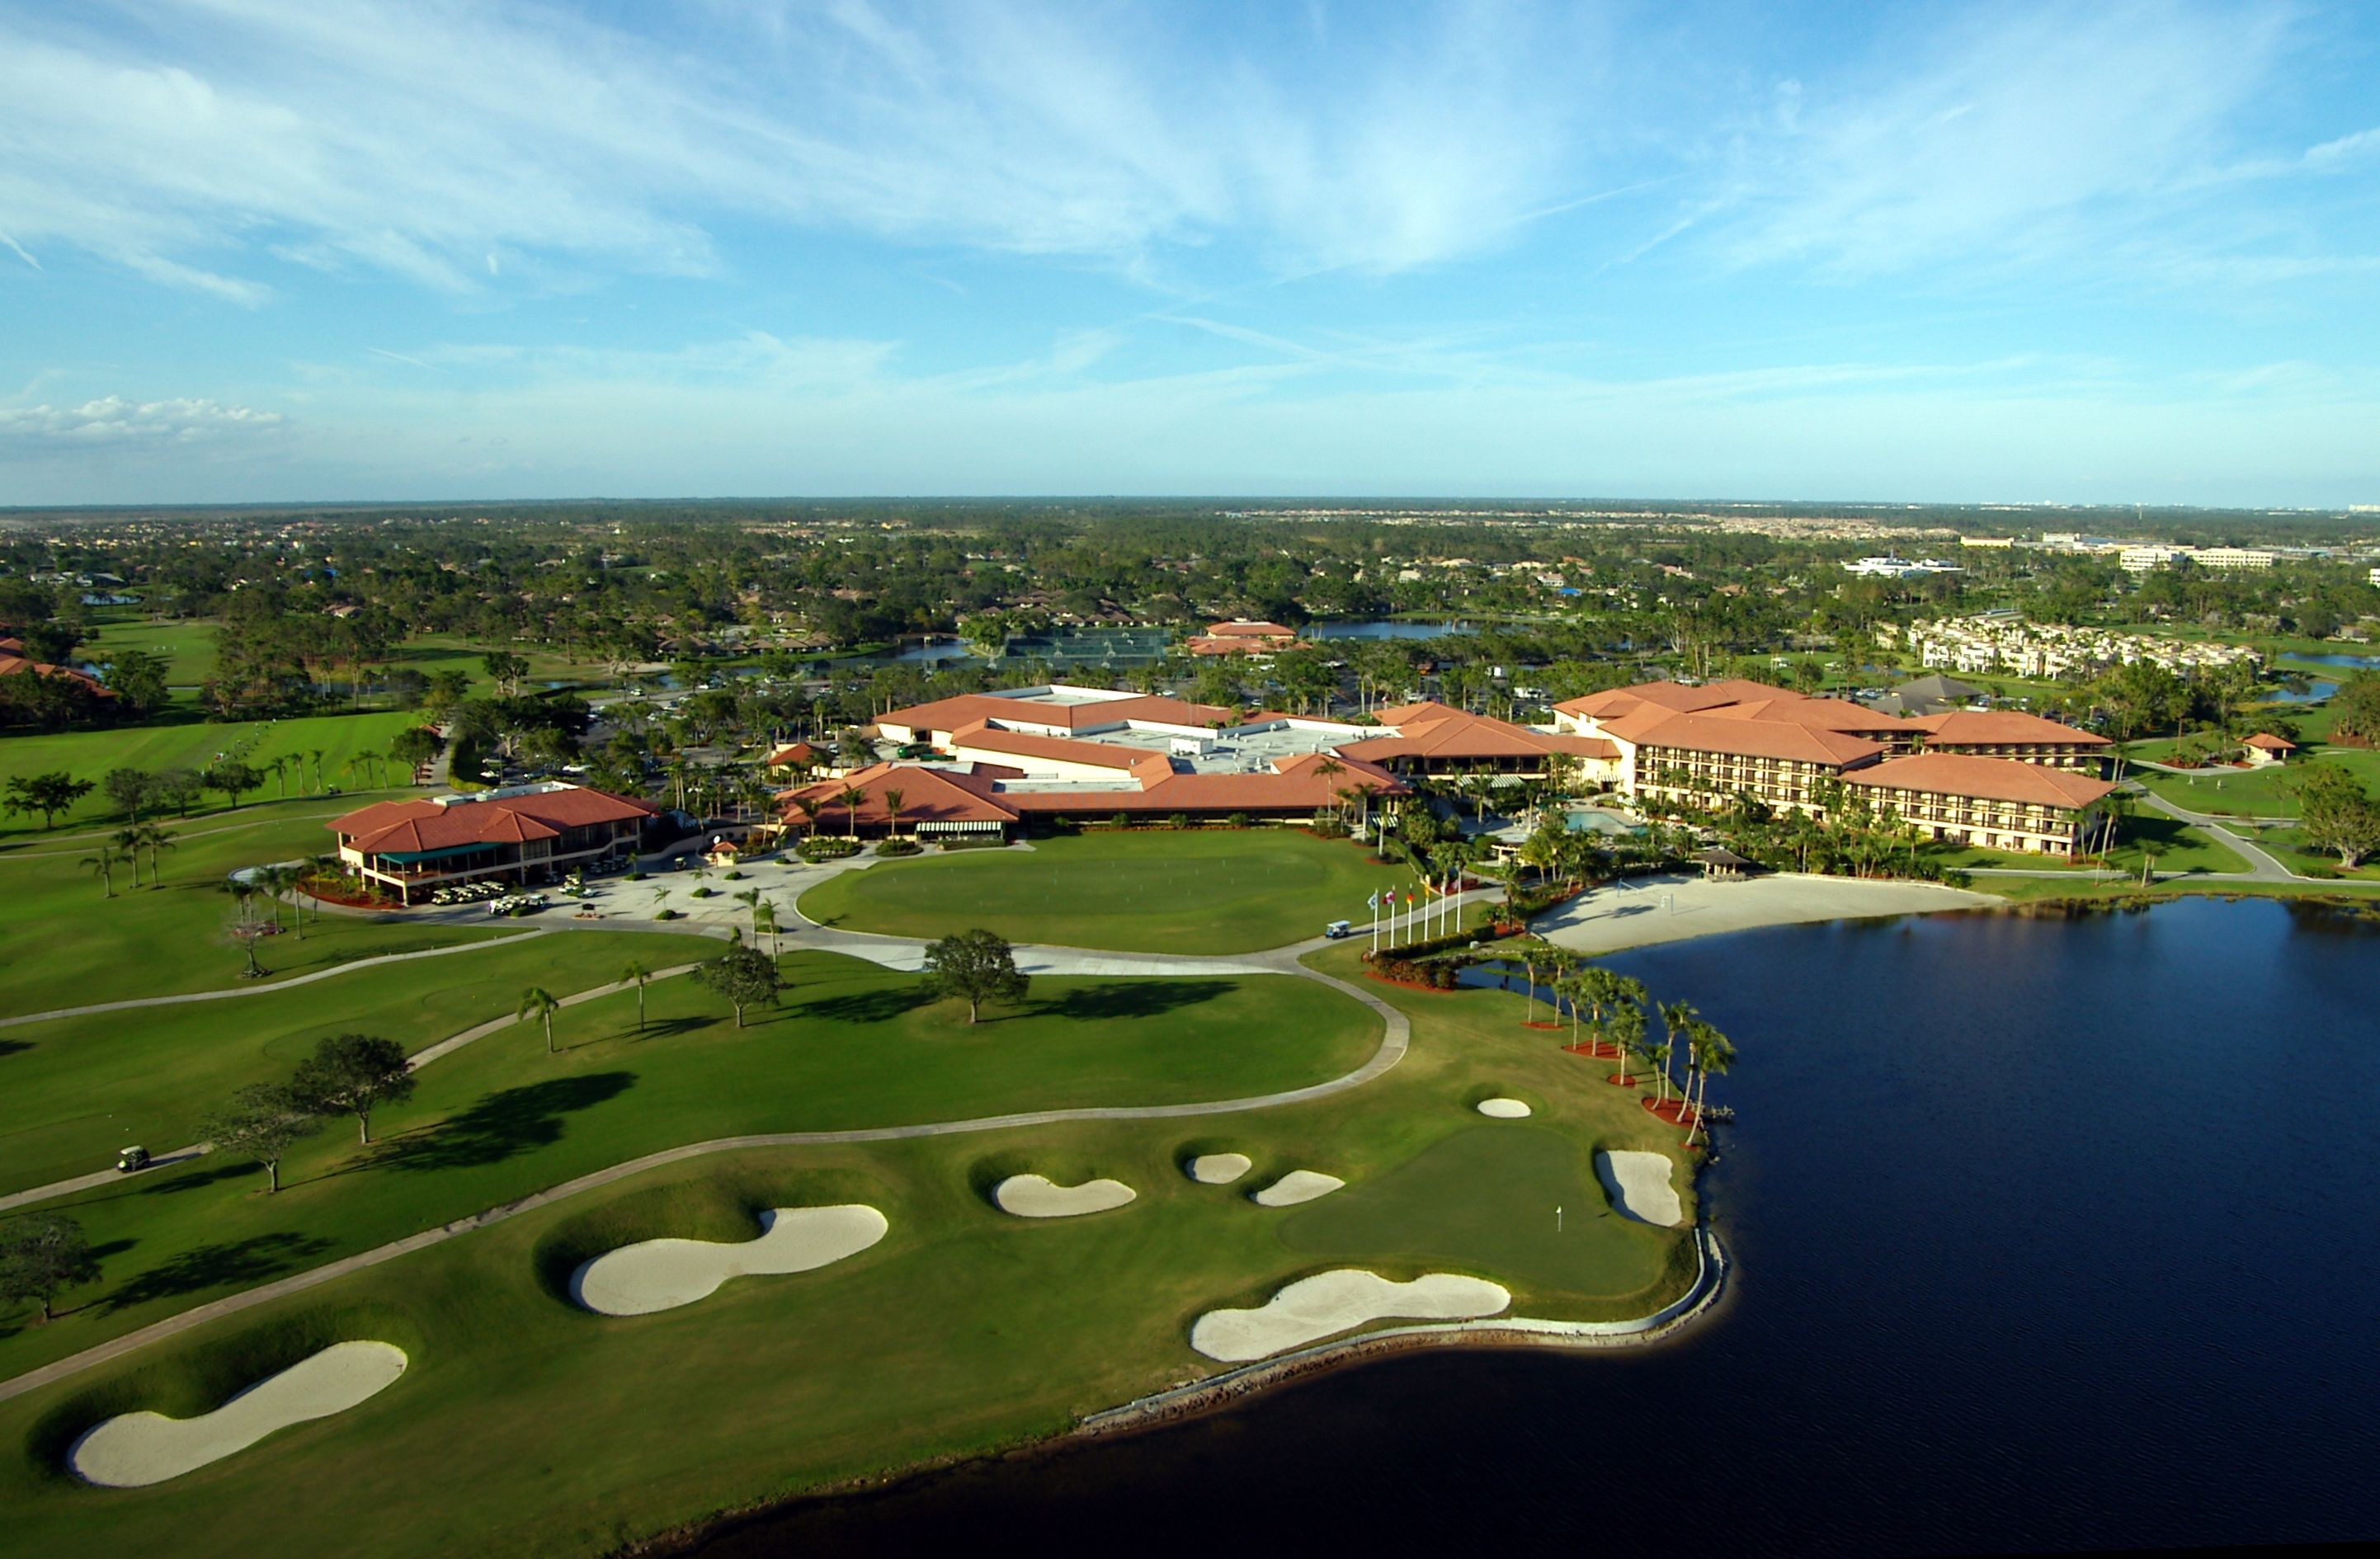 PGA National Golf Club - The Squire - Golf Course - All Square Golf